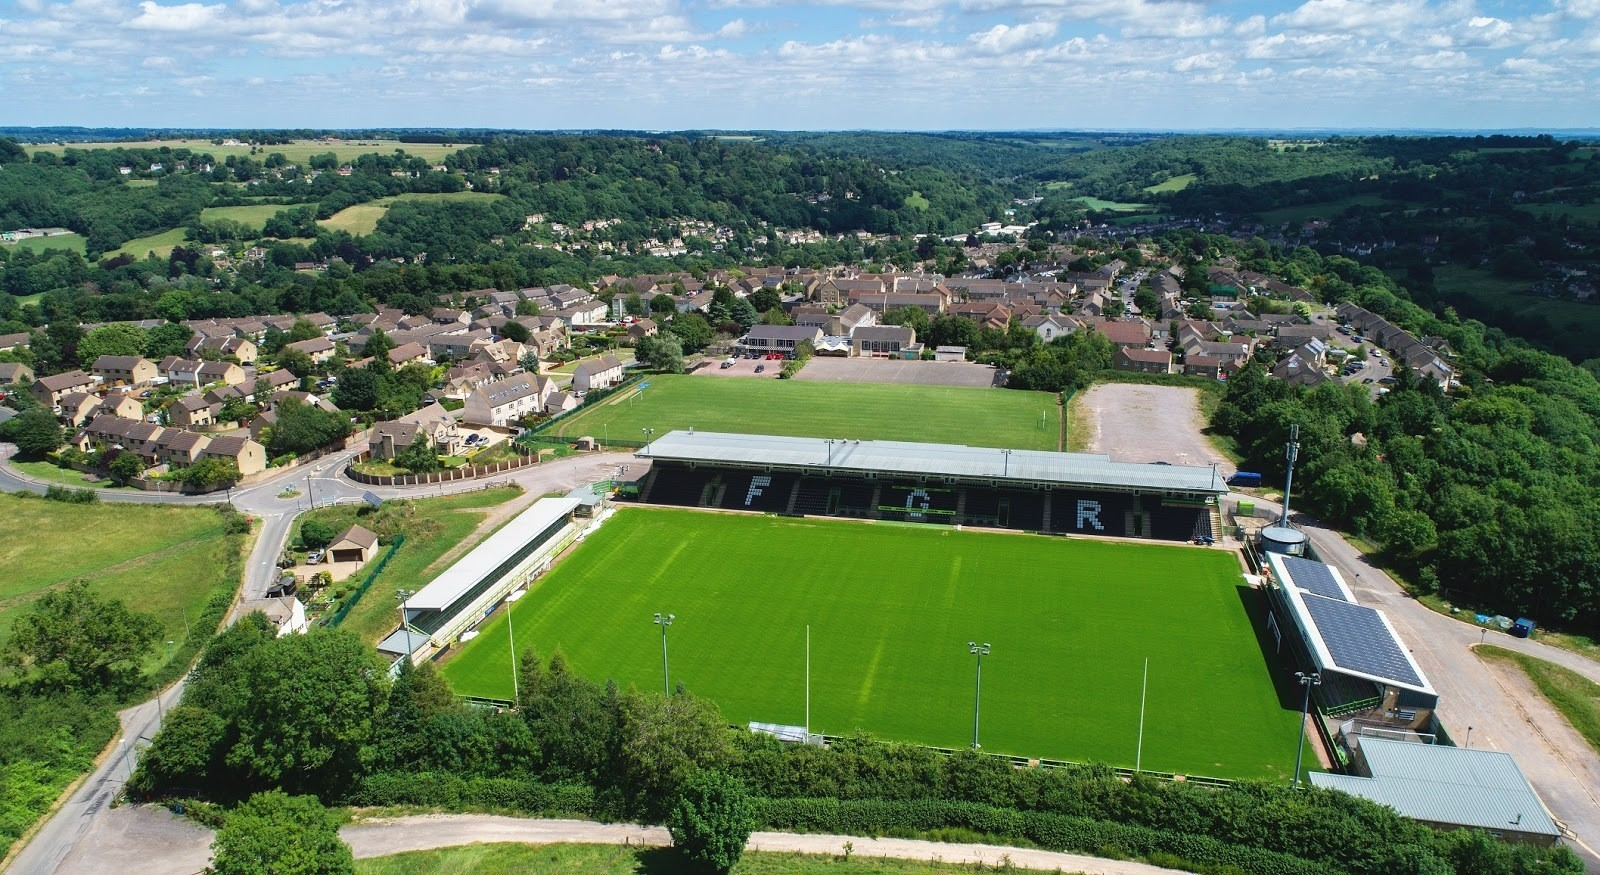 The Forest Green Rovers stadium, The New Lawn